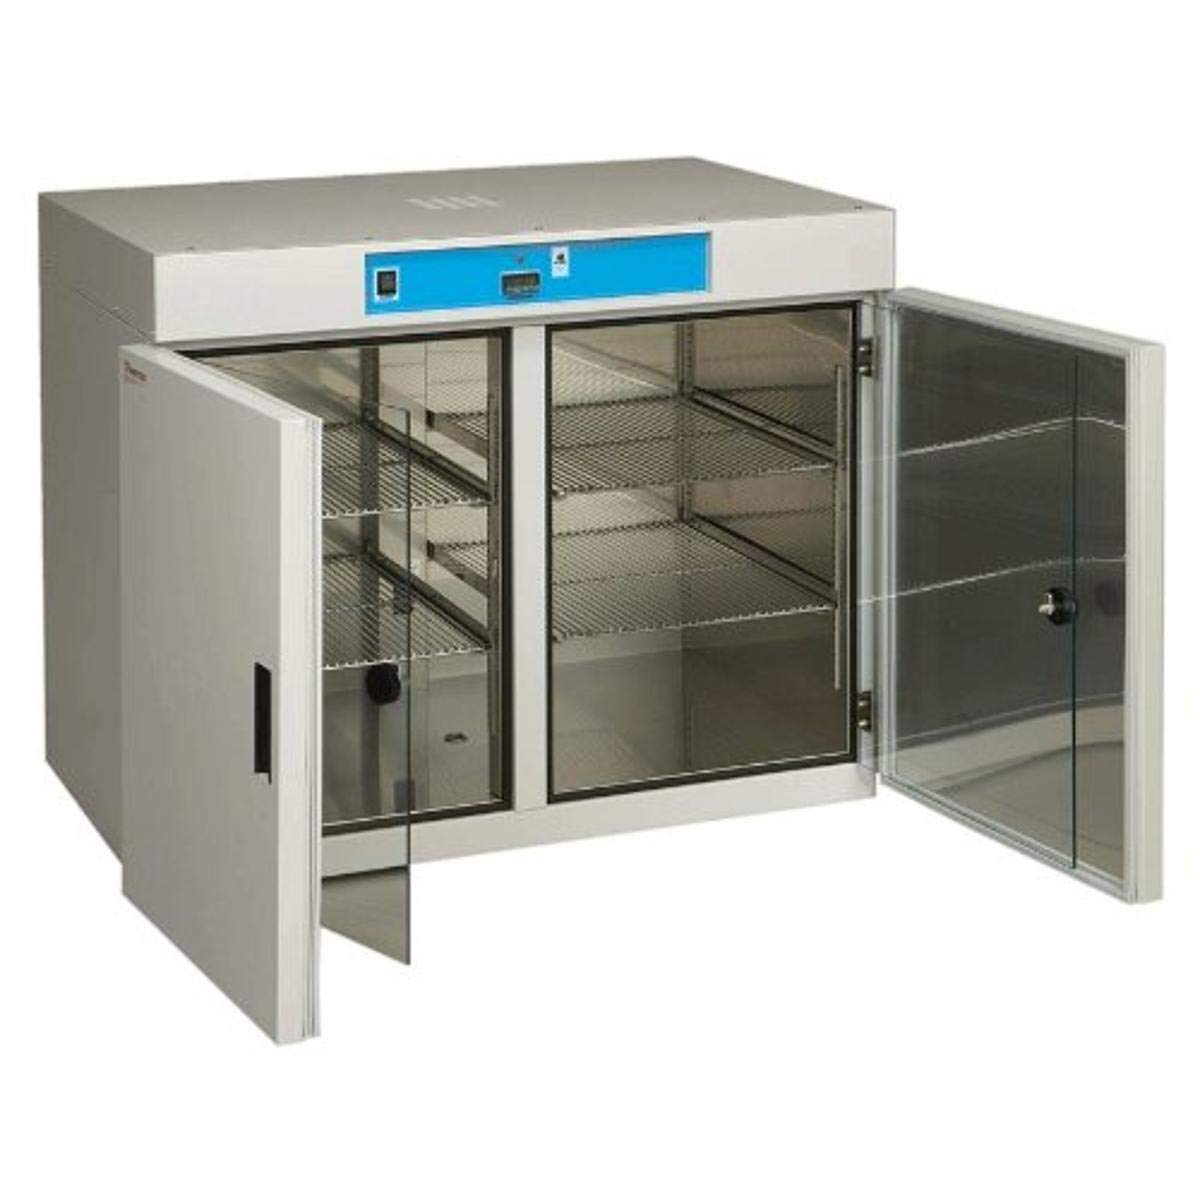 Thermo Scientific ELED PR205070M Convection Large special price Mechanical High material Precision